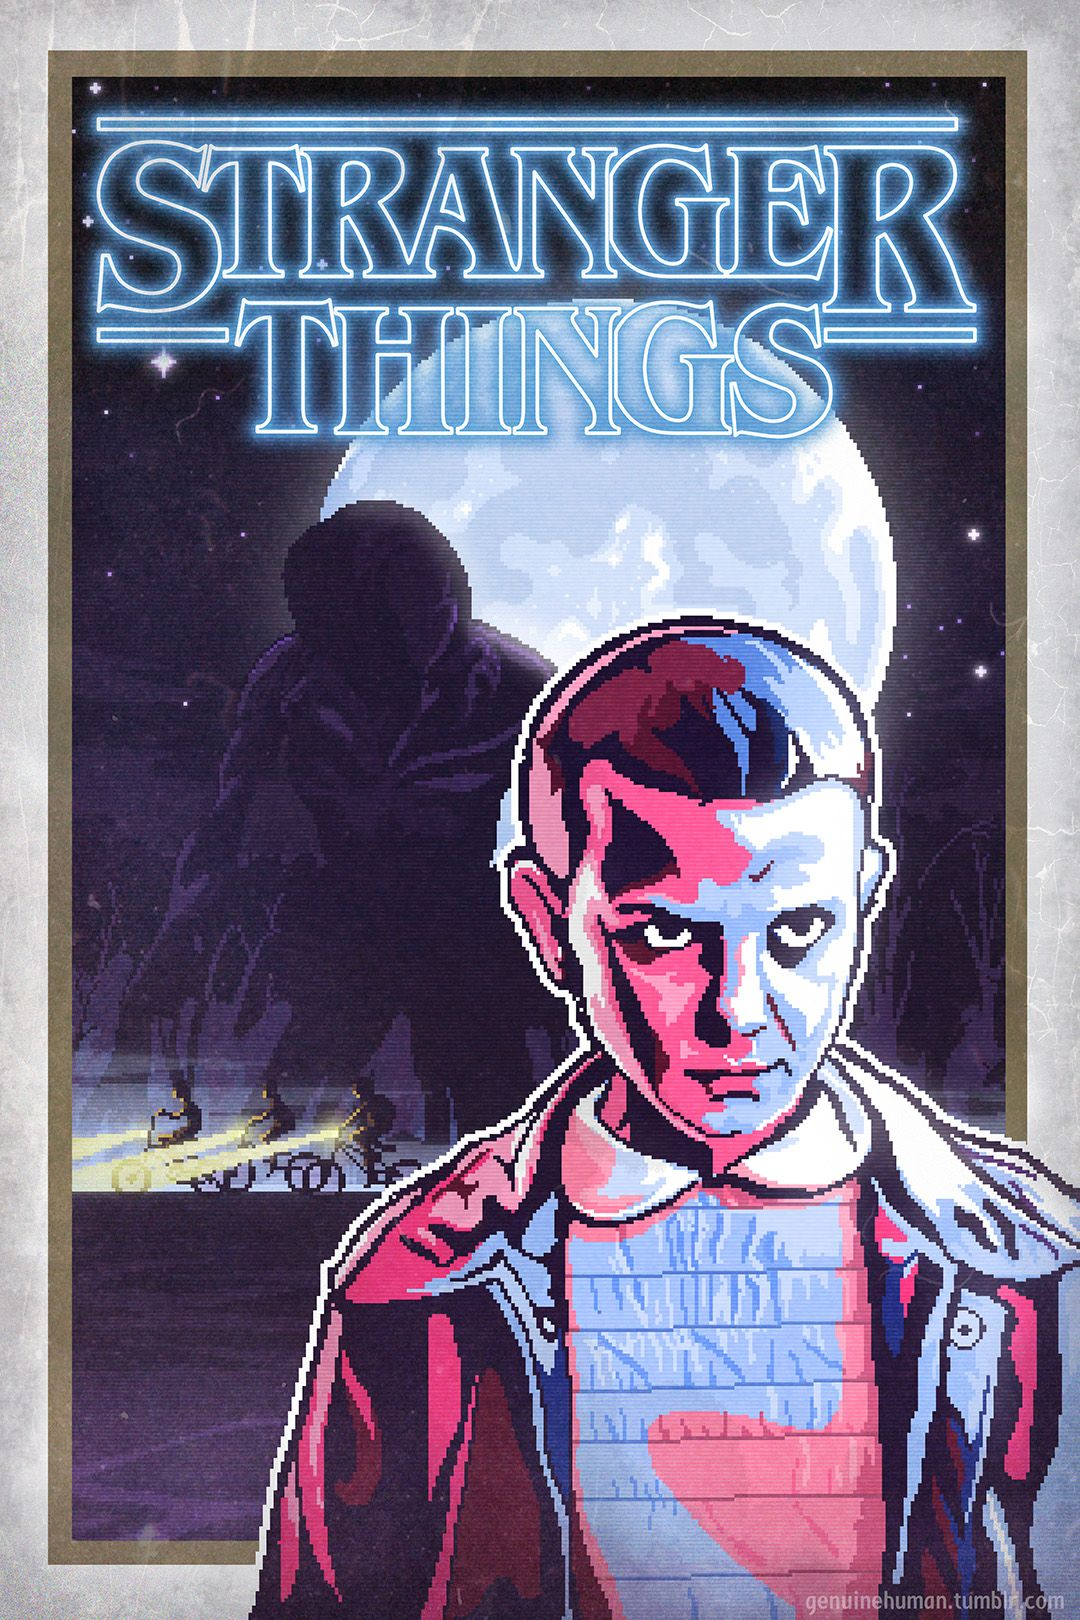 Stranger Things Stranger things fanart, Stranger things